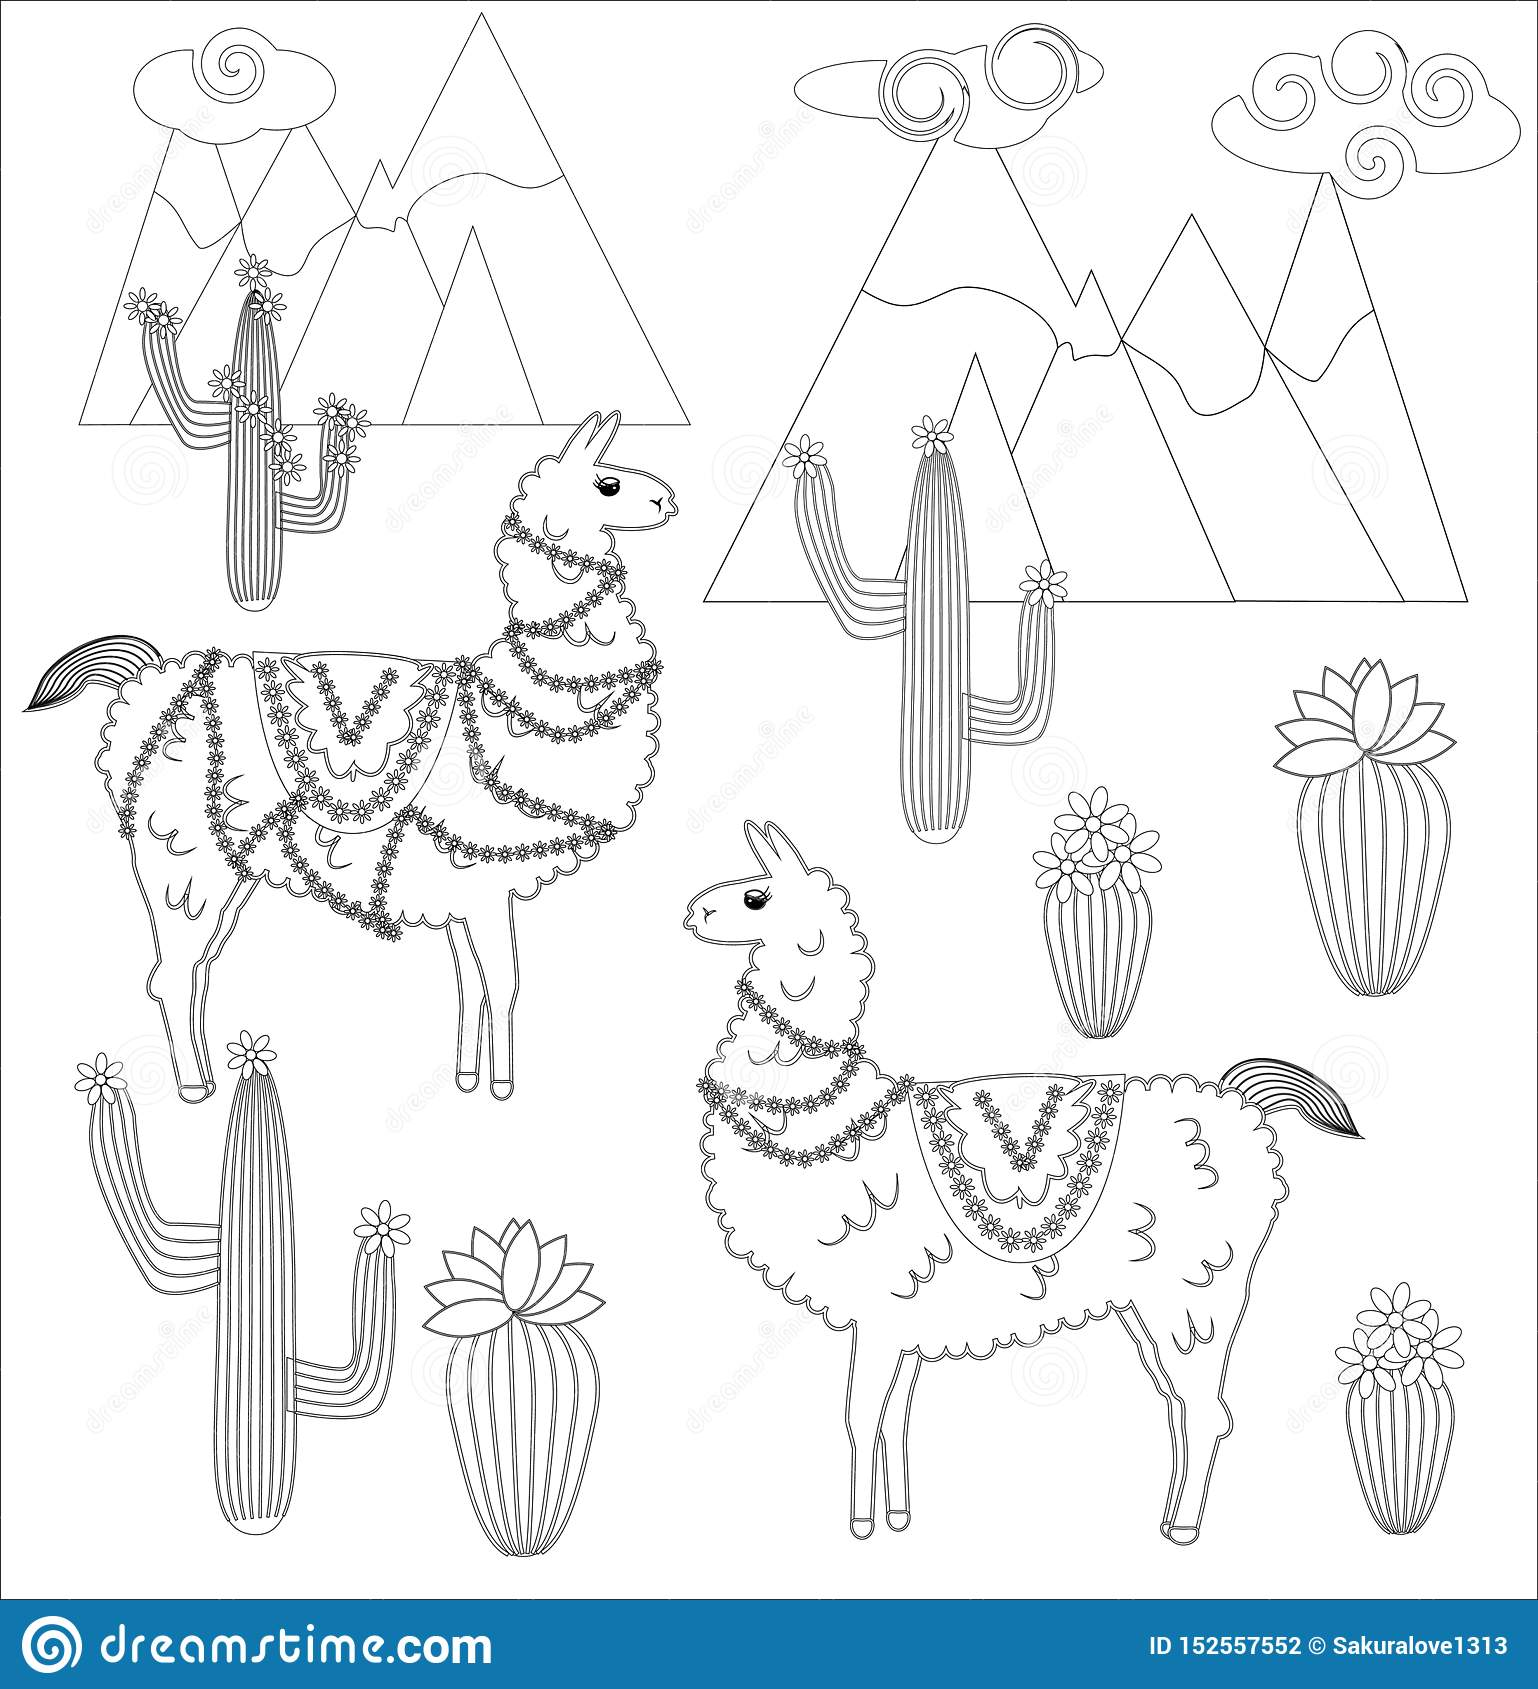 Coloring page of cartoon lama. Lama, coloring for adults and ... | 1689x1538